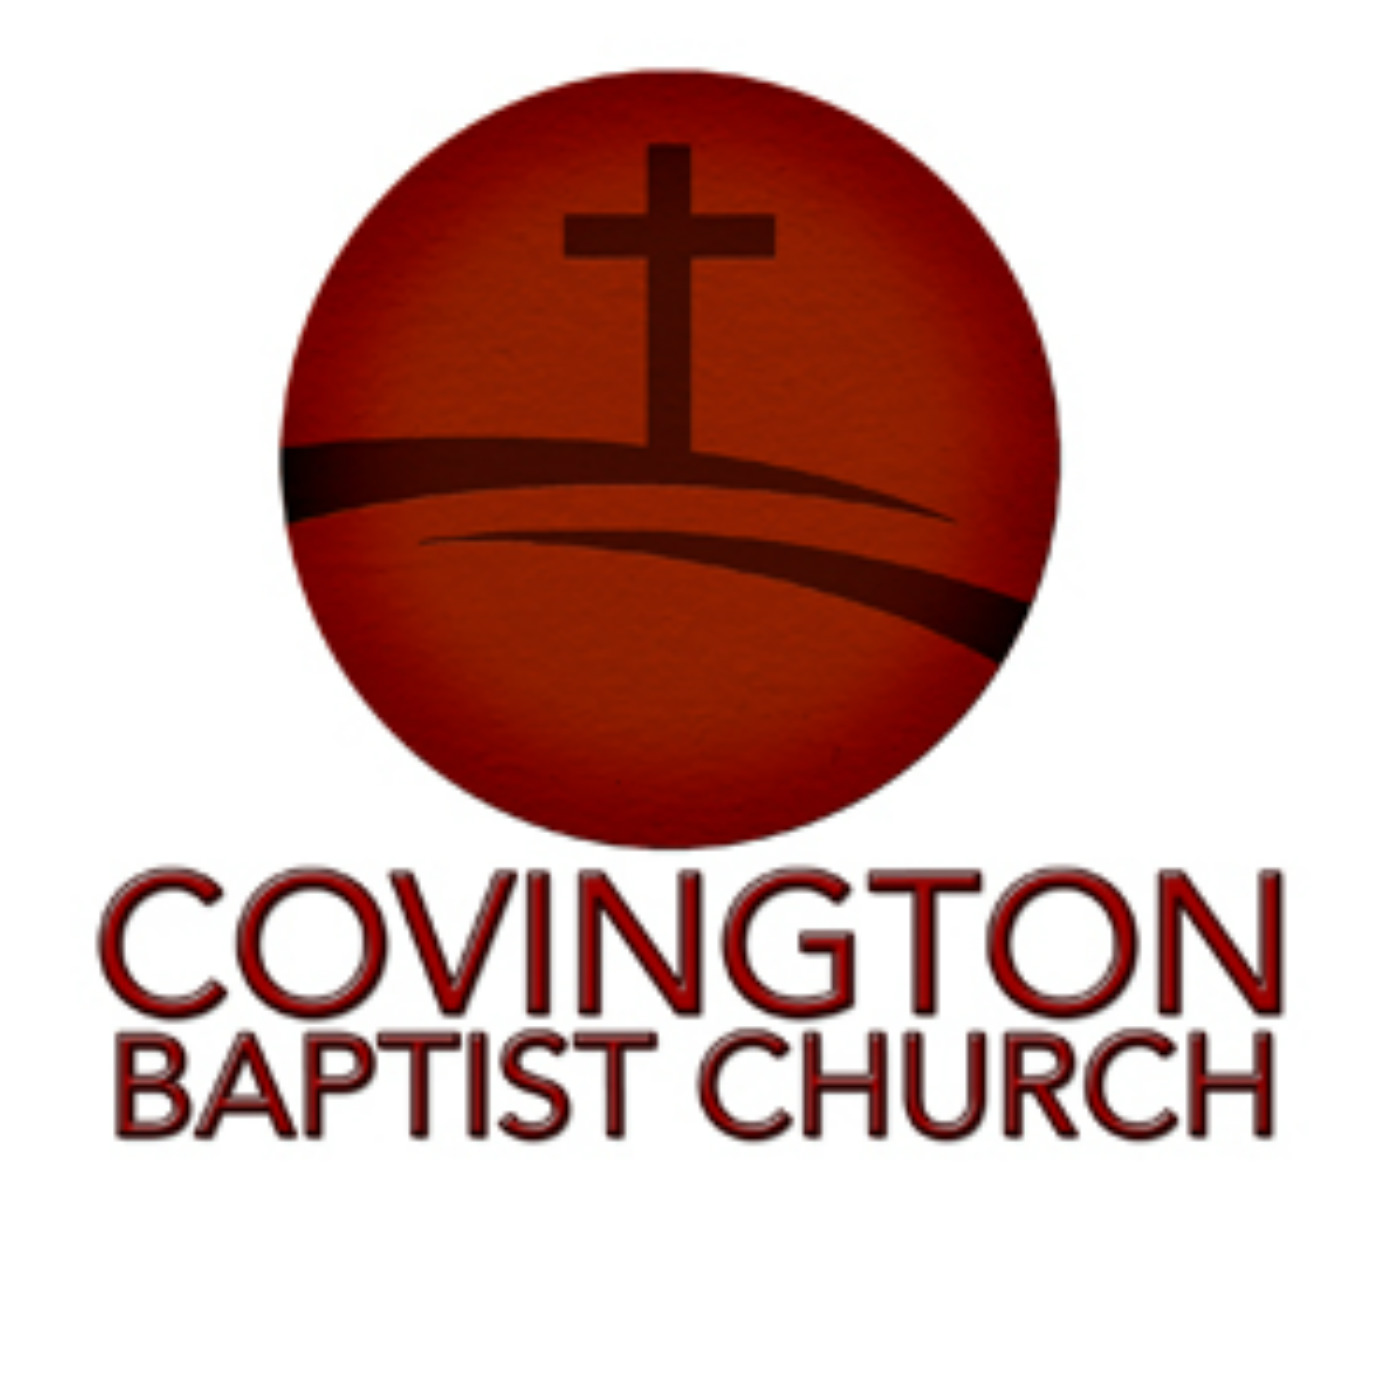 Covington Baptist Church